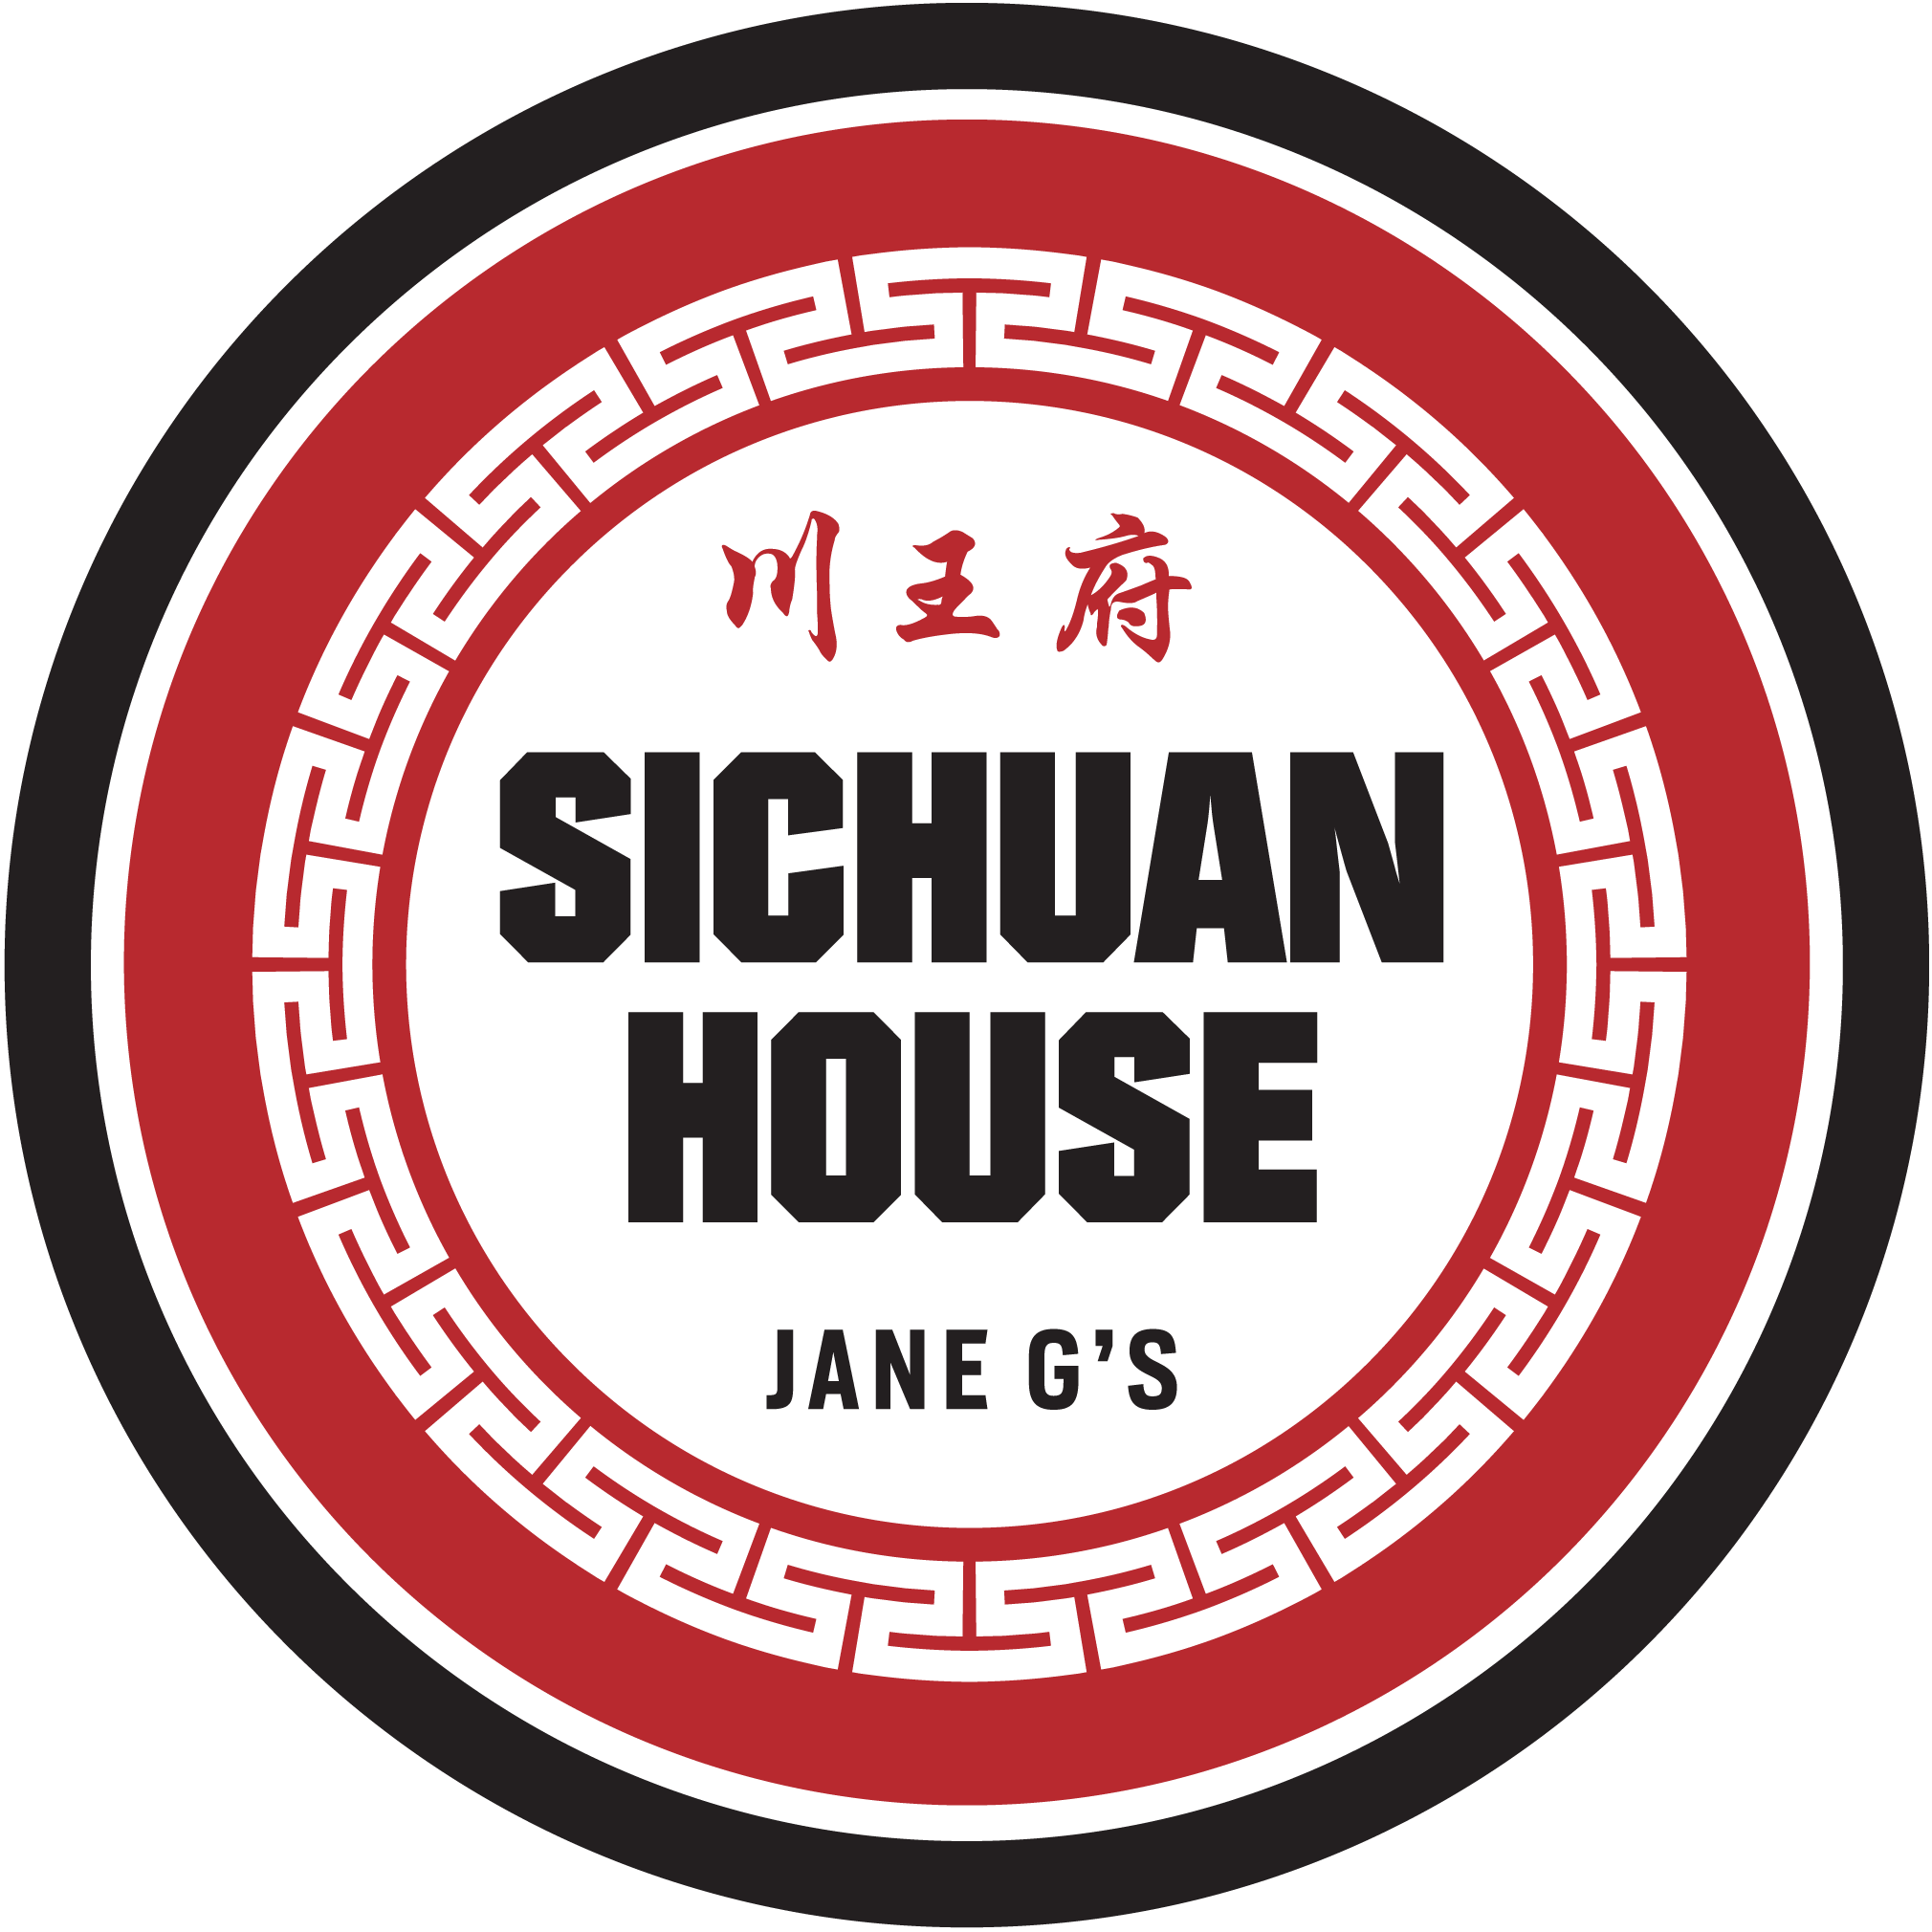 Sichuan House by Jane G's